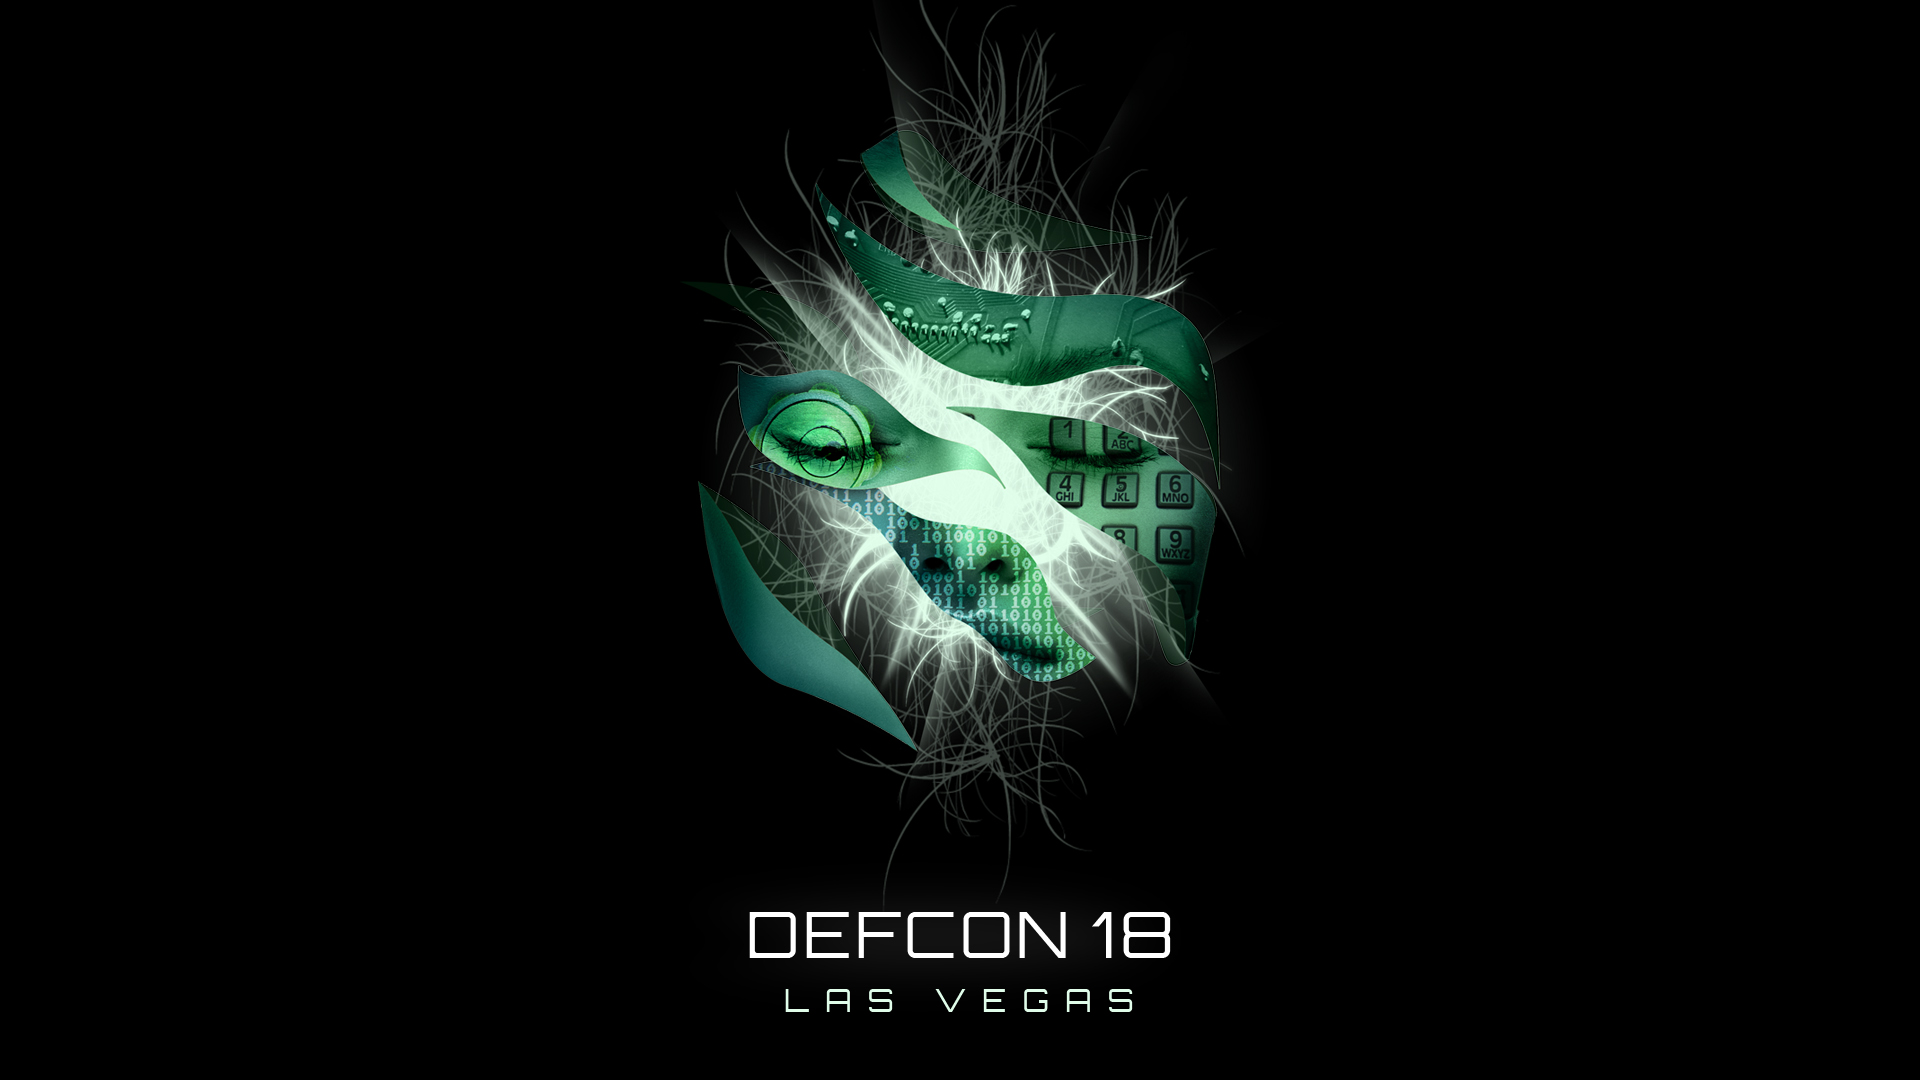 Defcon Hacking Wallpaper 1920x1080 Defcon Hacking 1920x1080